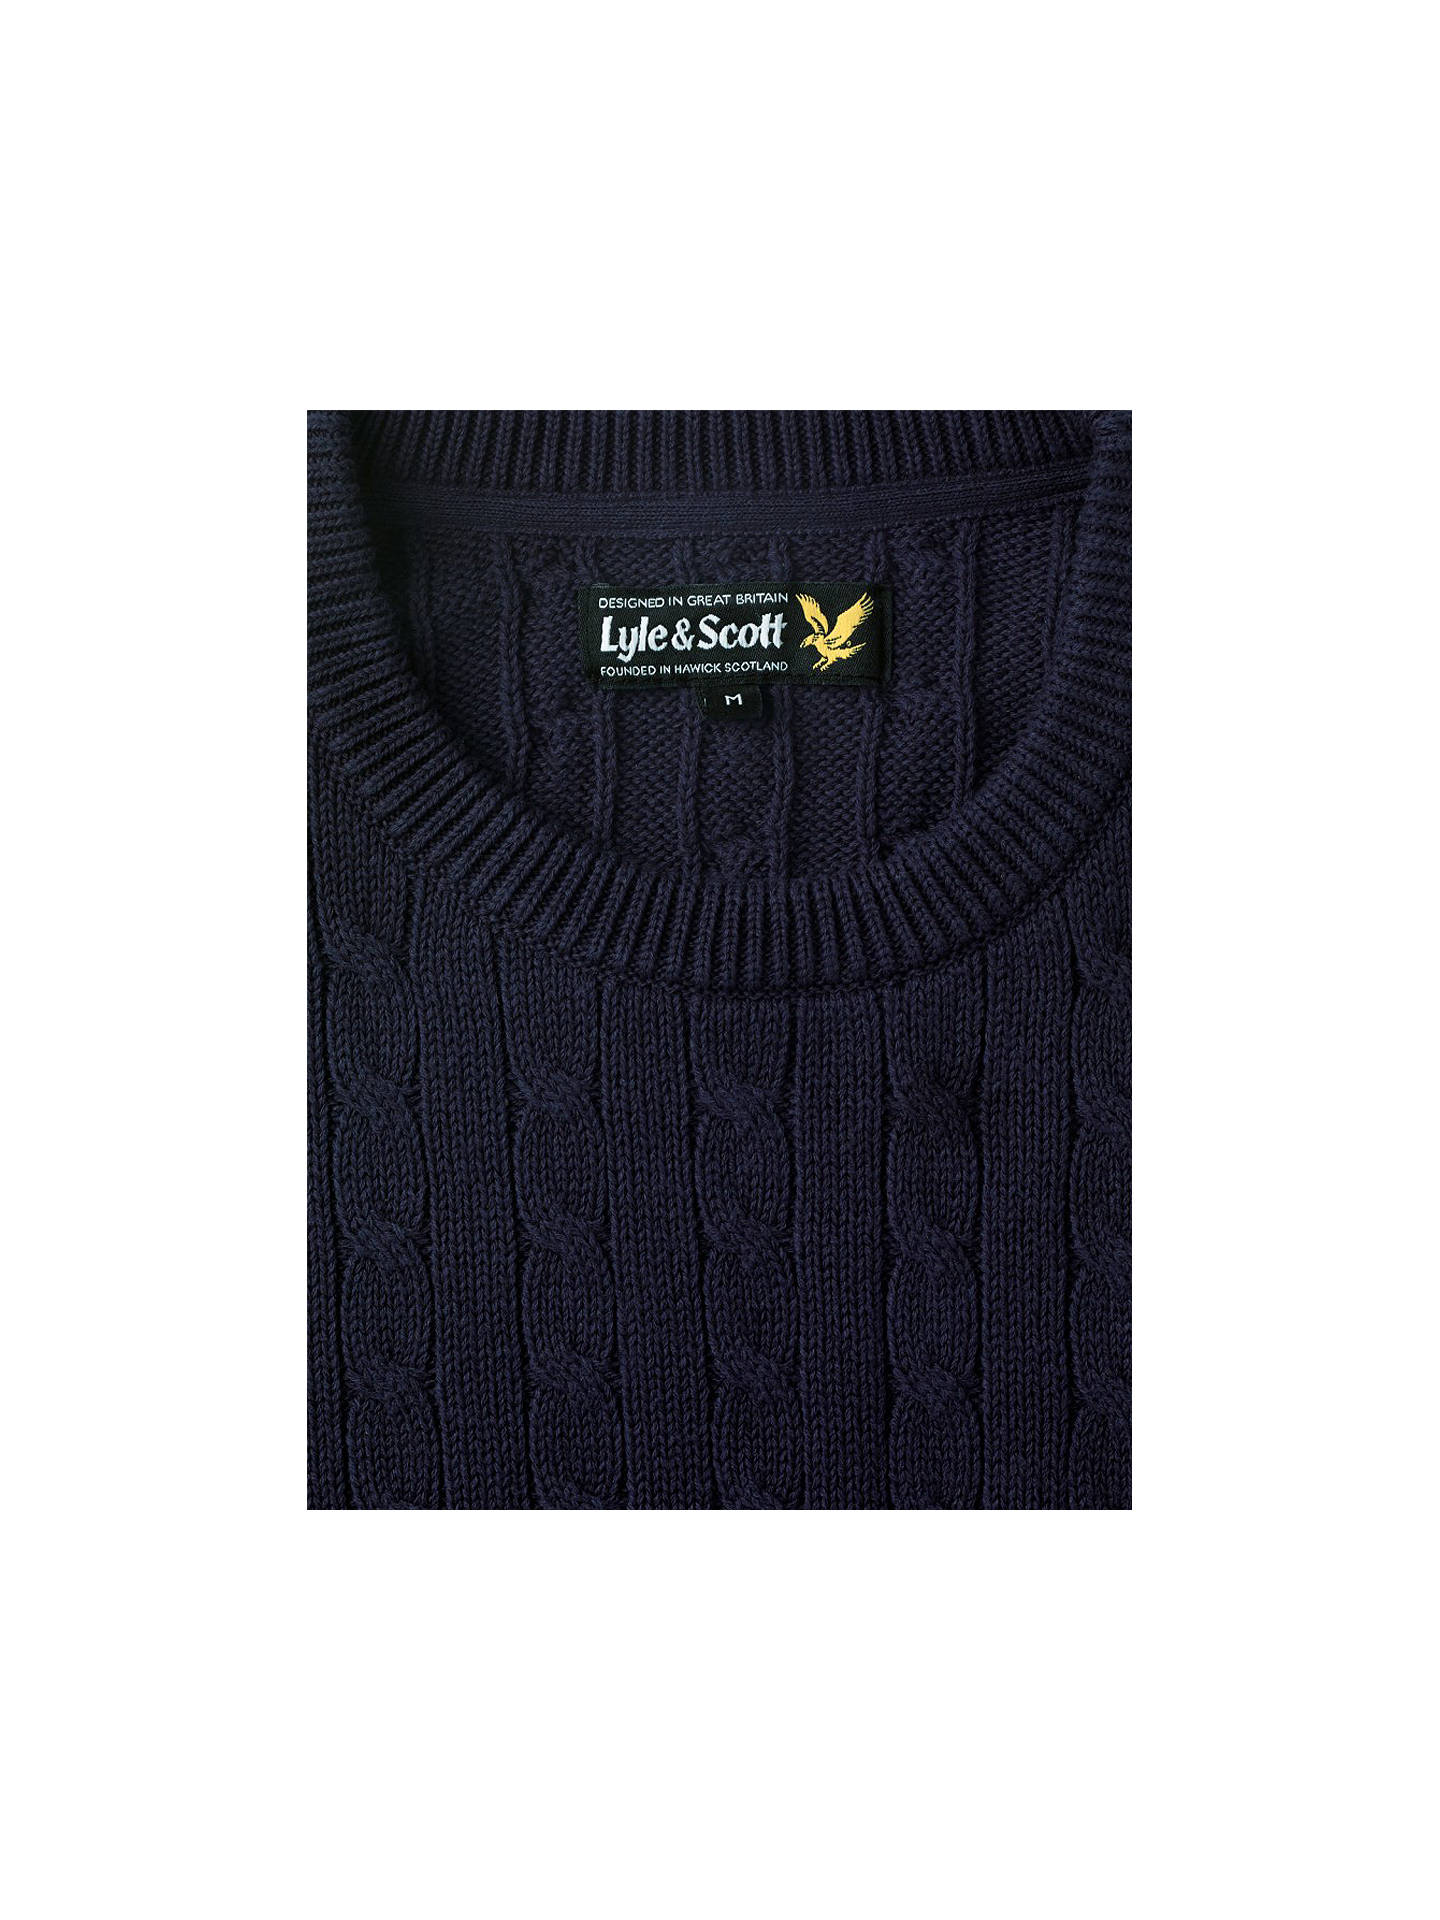 Lyle and /& Scott mens wool gloves navy blue /& electric blue eagle NEW winter